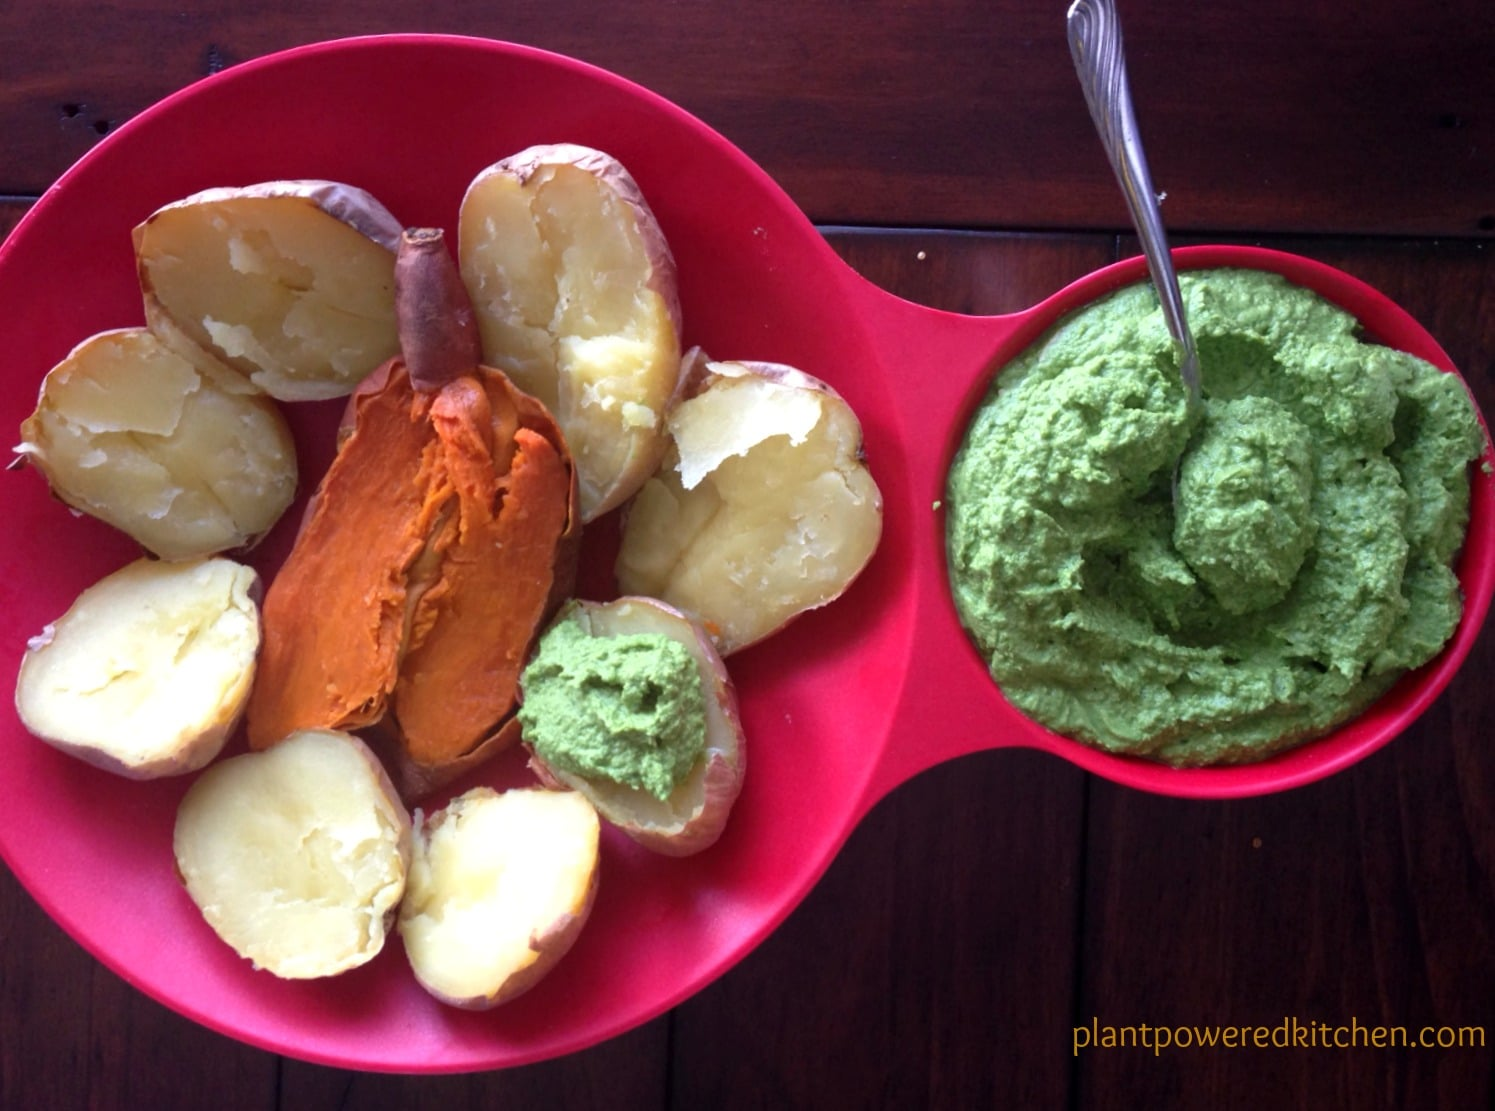 Edamame Dip on Baked Potatoes and Sweet Potatoes